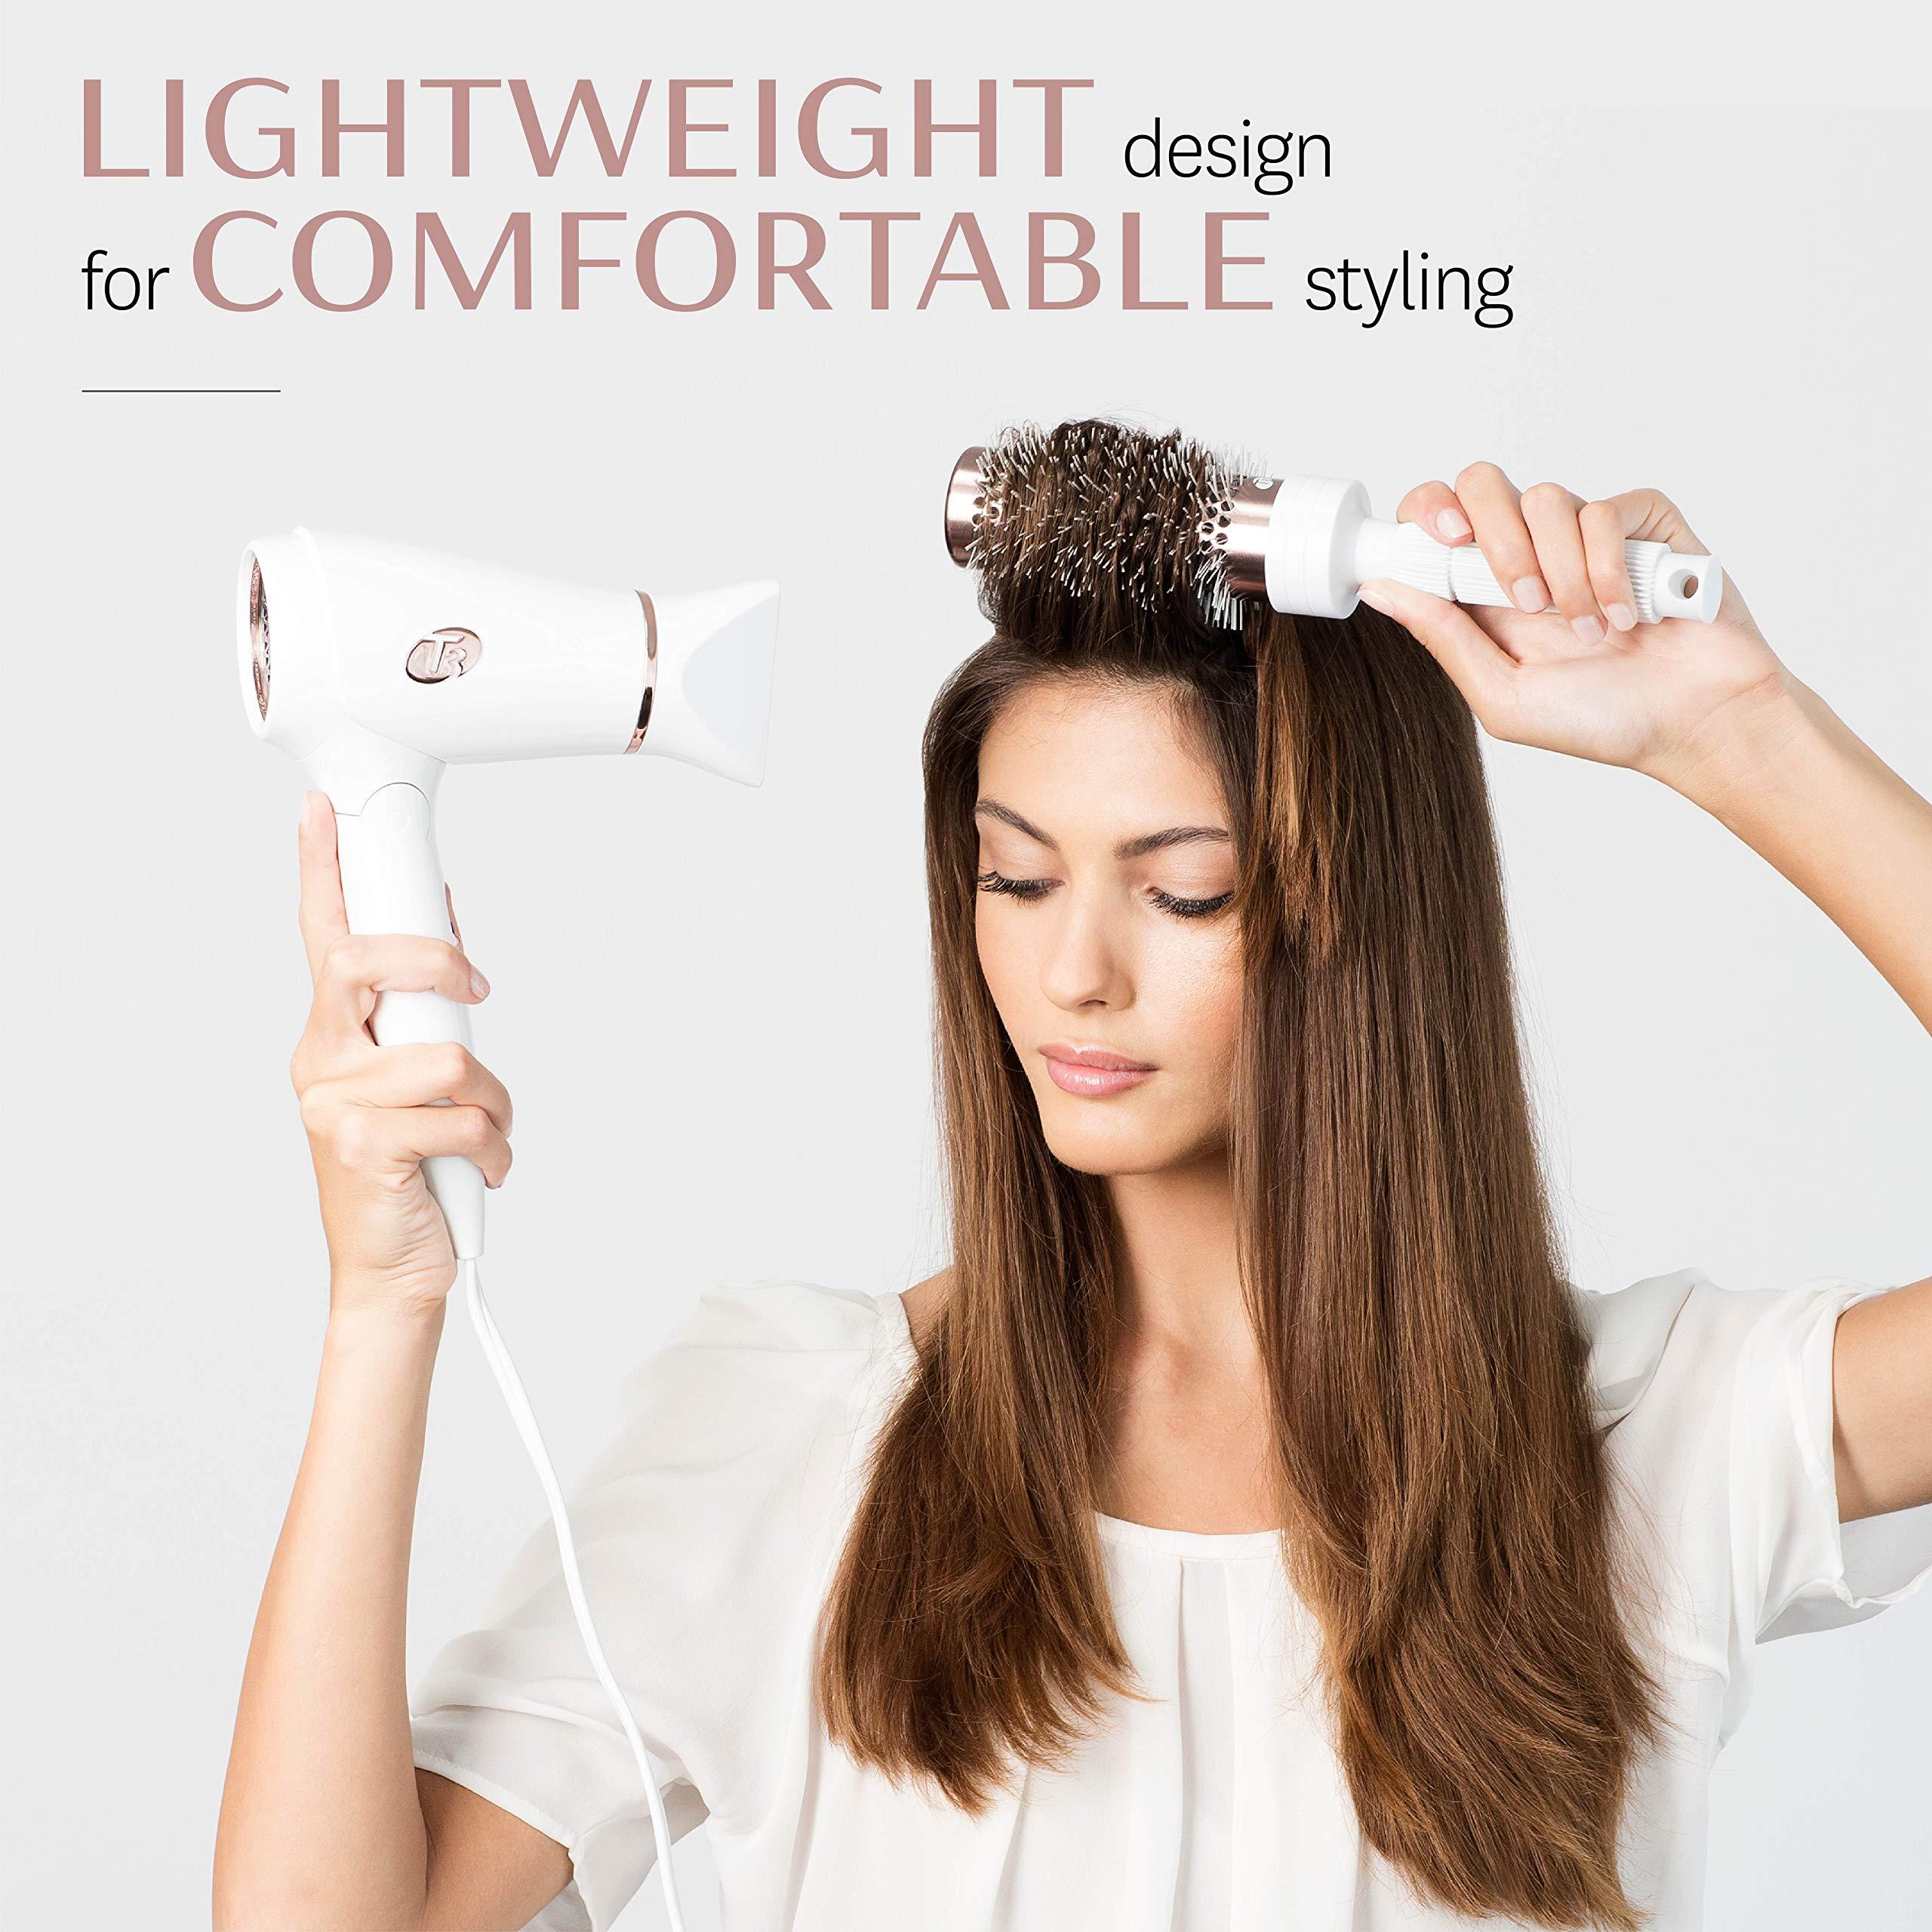 T3 - Featherweight Compact Folding Hair Dryer | Lightweight & Portable Dual Voltage Travel Hair Dryer | T3 SoftAire Technology for Fast, Healthy, and Frizz-Free Blow Drying | Includes Storage Bag by T3 Micro (Image #7)